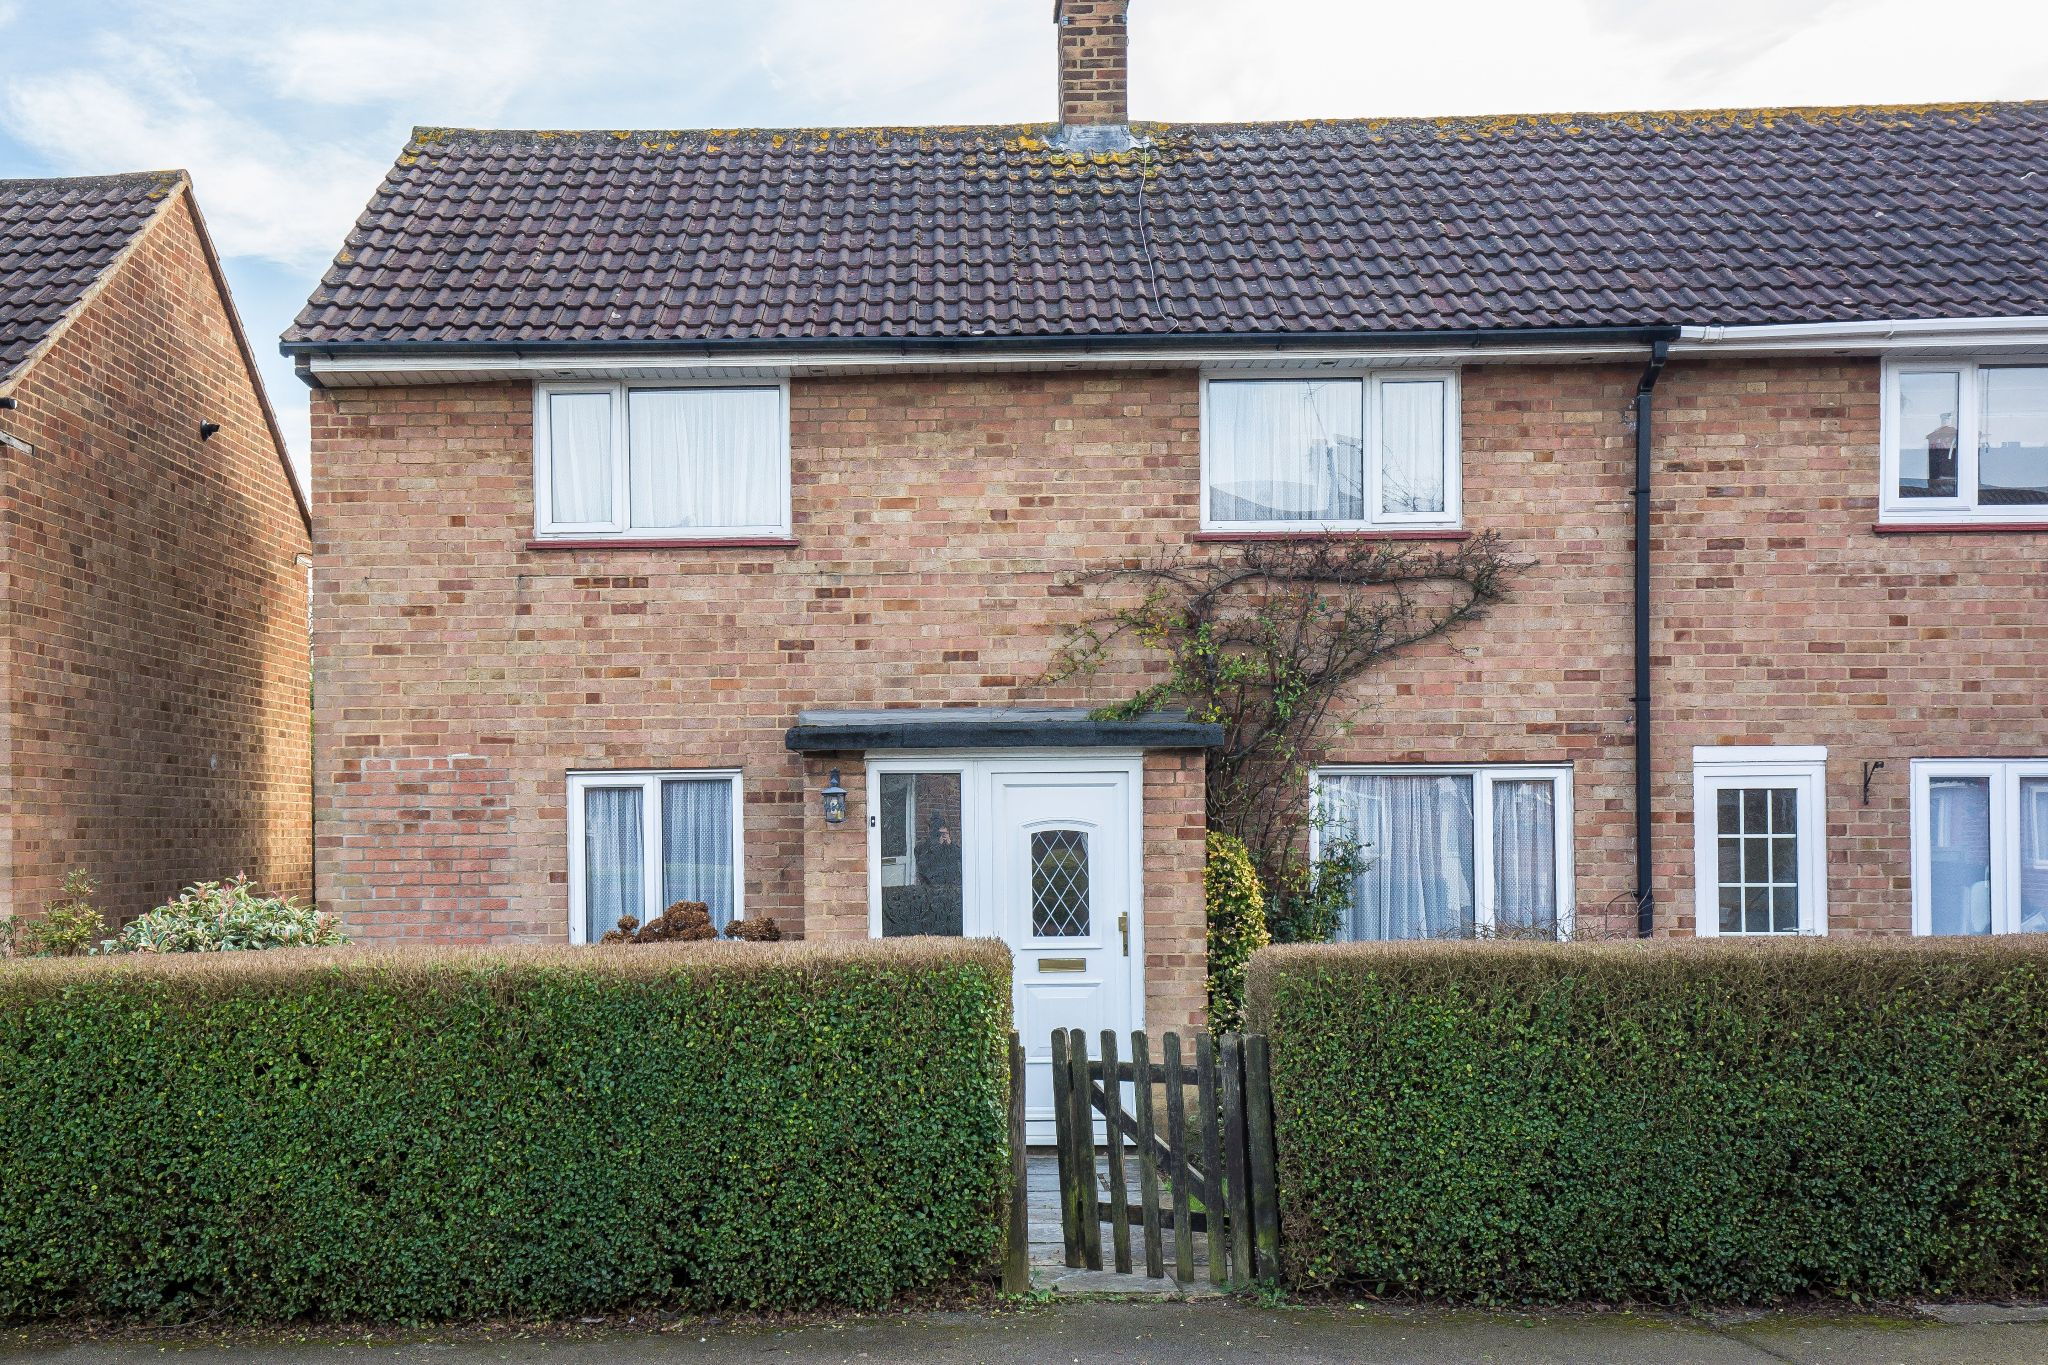 3 bedroom mid terraced house SSTC in Welham Green - Photograph 3